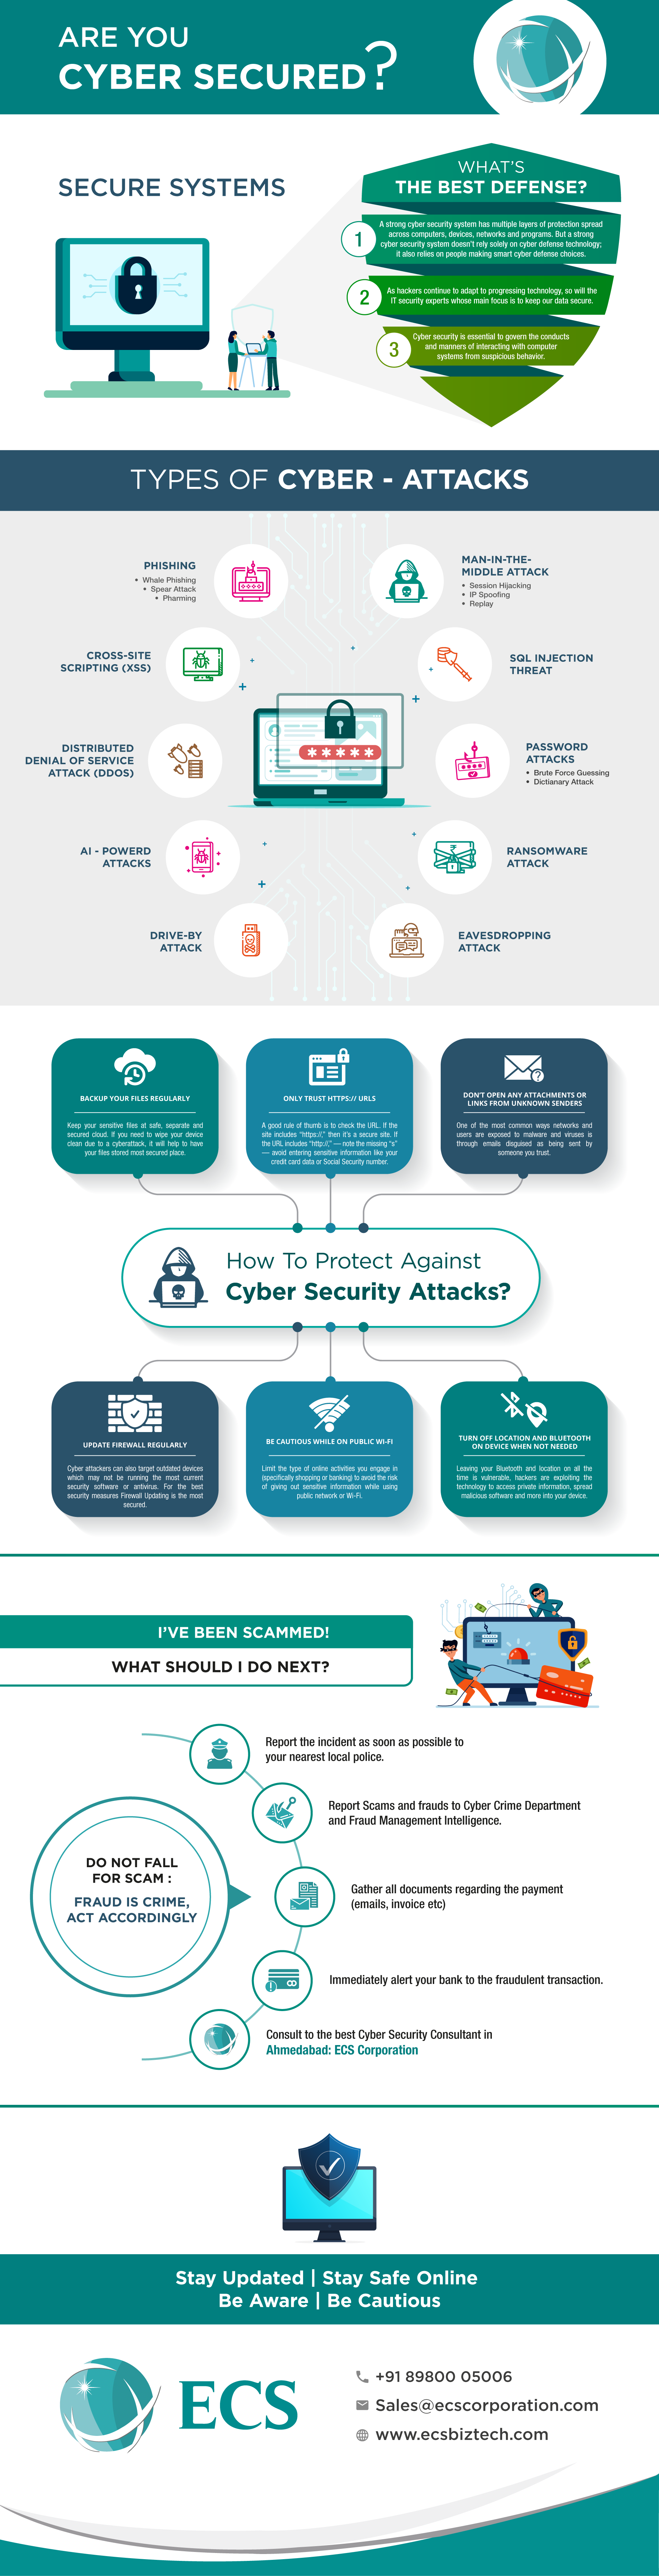 Are You Cyber Secured?